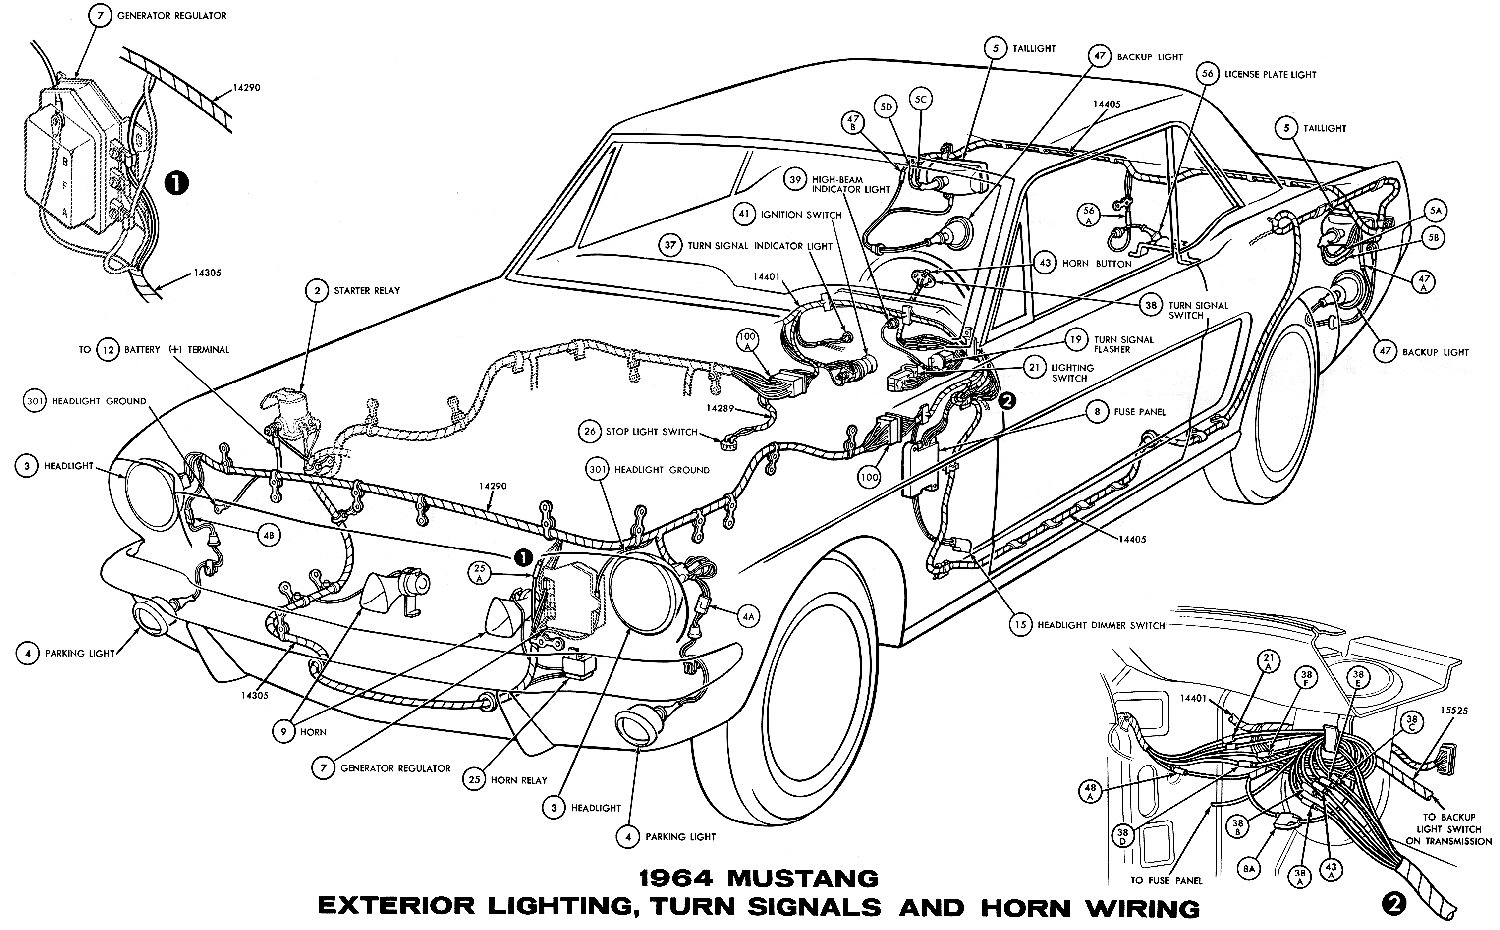 1964 Mustang Wiring Diagrams - Average Joe Restoration on jaguar mark x, jaguar exhaust system, 2005 mini cooper parts diagrams, jaguar shooting brake, dish network receiver installation diagrams, jaguar gt, jaguar xk8 problems, jaguar mark 2, jaguar 2 door, jaguar wagon, jaguar rear end, jaguar fuel pump diagram, jaguar growler, jaguar e class, jaguar r type, jaguar parts diagrams, jaguar hardtop convertible, jaguar racing green, jaguar electrical diagrams,